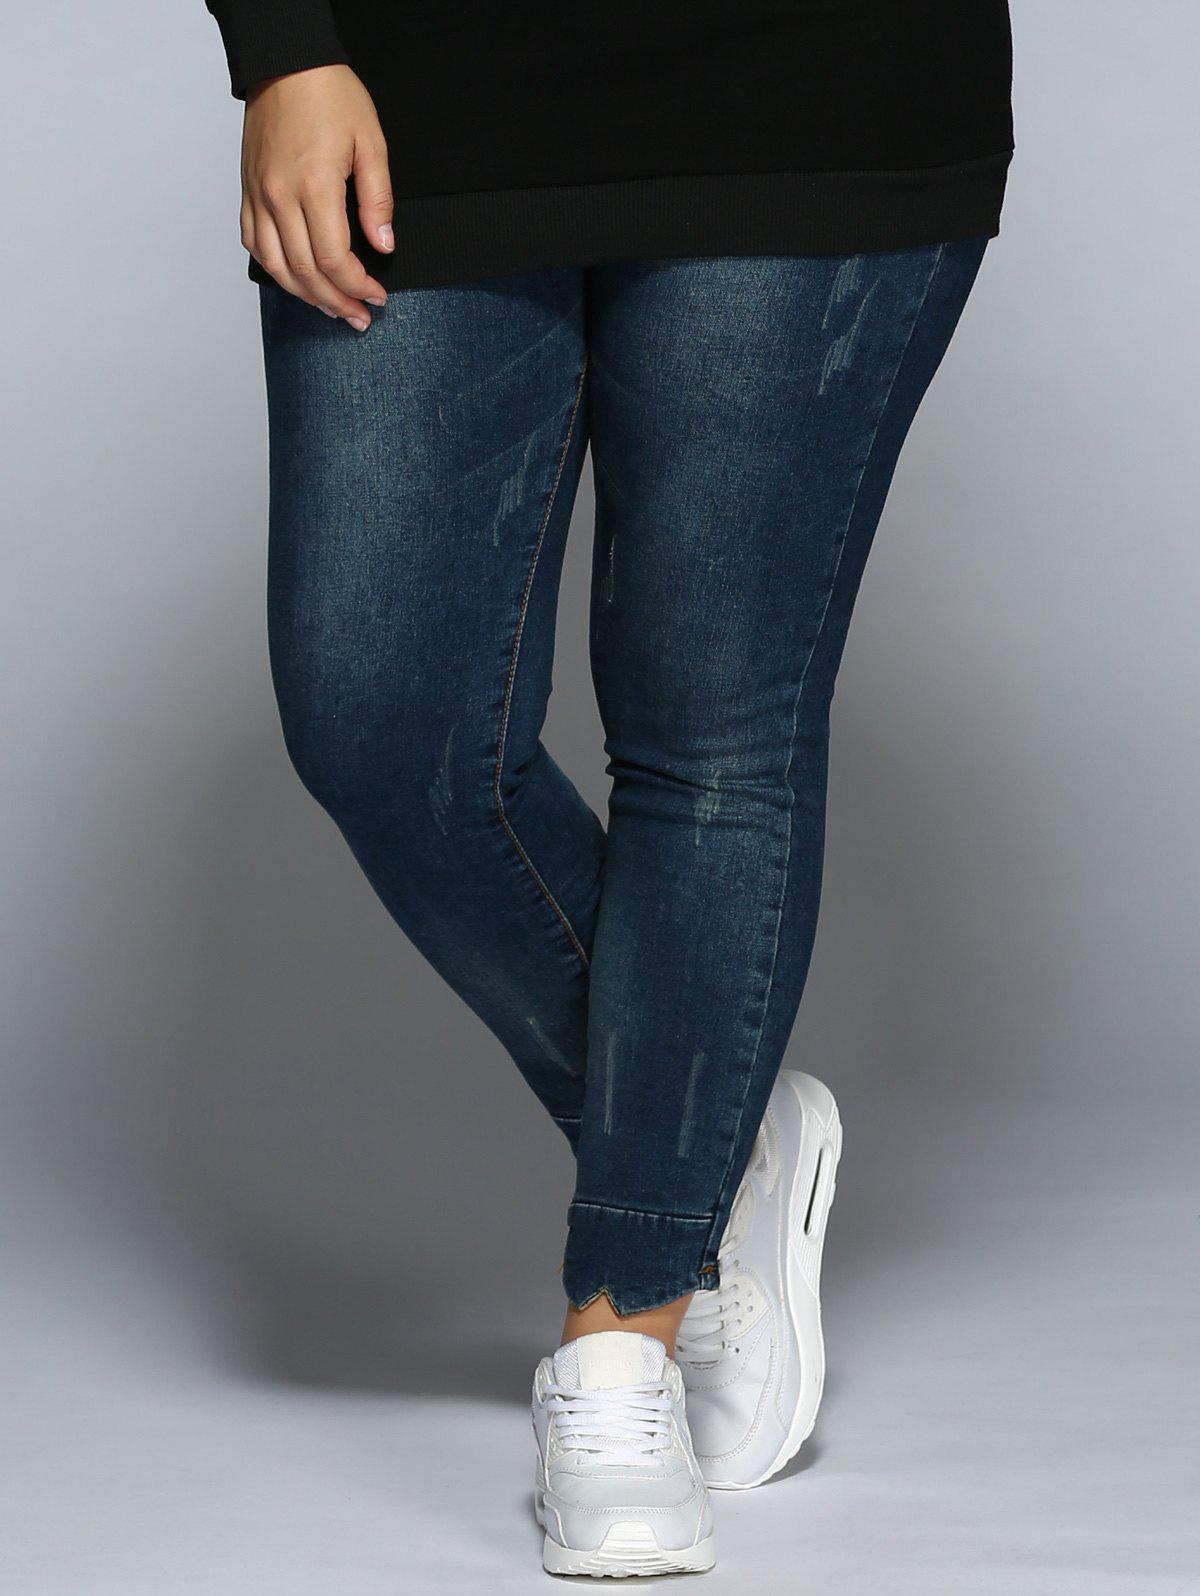 Plus Size Pencil JeansWOMEN<br><br>Size: 2XL; Color: DENIM BLUE; Style: Casual; Length: Normal; Material: Spandex; Fit Type: Skinny; Waist Type: Mid; Closure Type: Button Fly; Pattern Type: Patchwork; Pant Style: Pencil Pants; Weight: 0.470kg; Package Contents: 1 x Jeans;